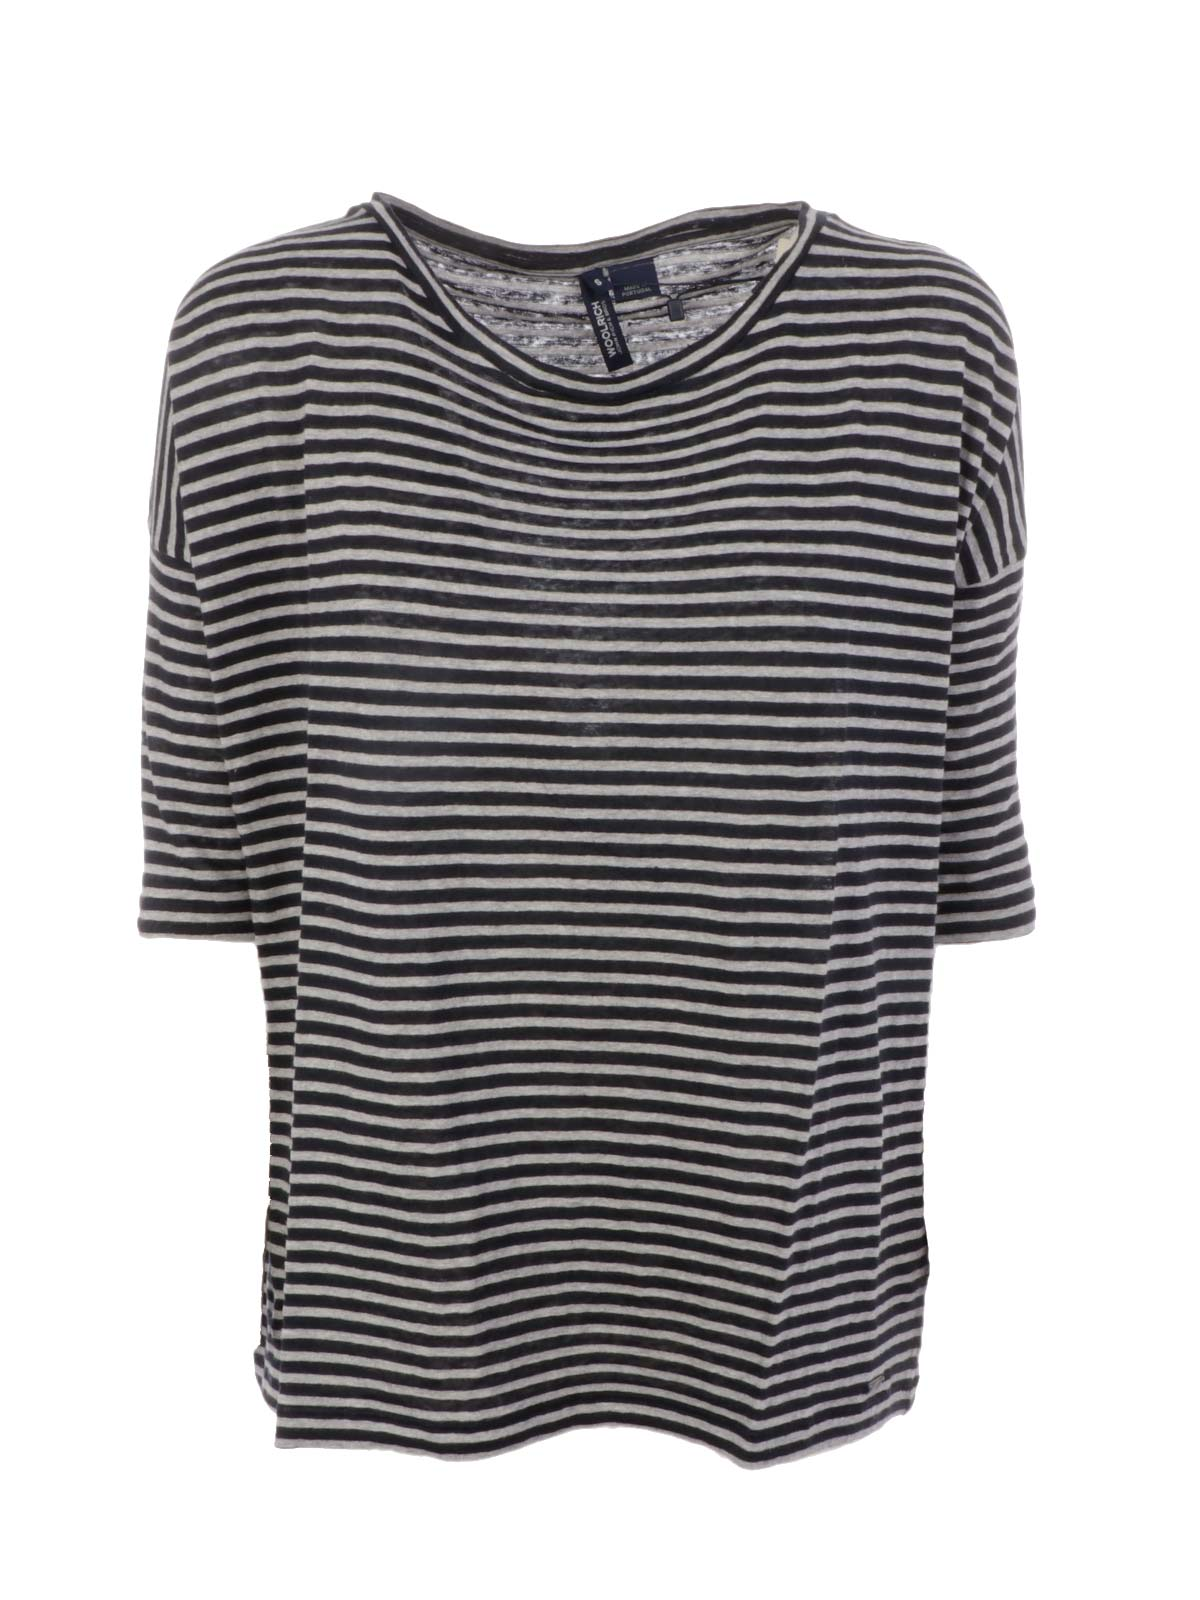 Picture of WOOLRICH | Women's Striped T-shirt